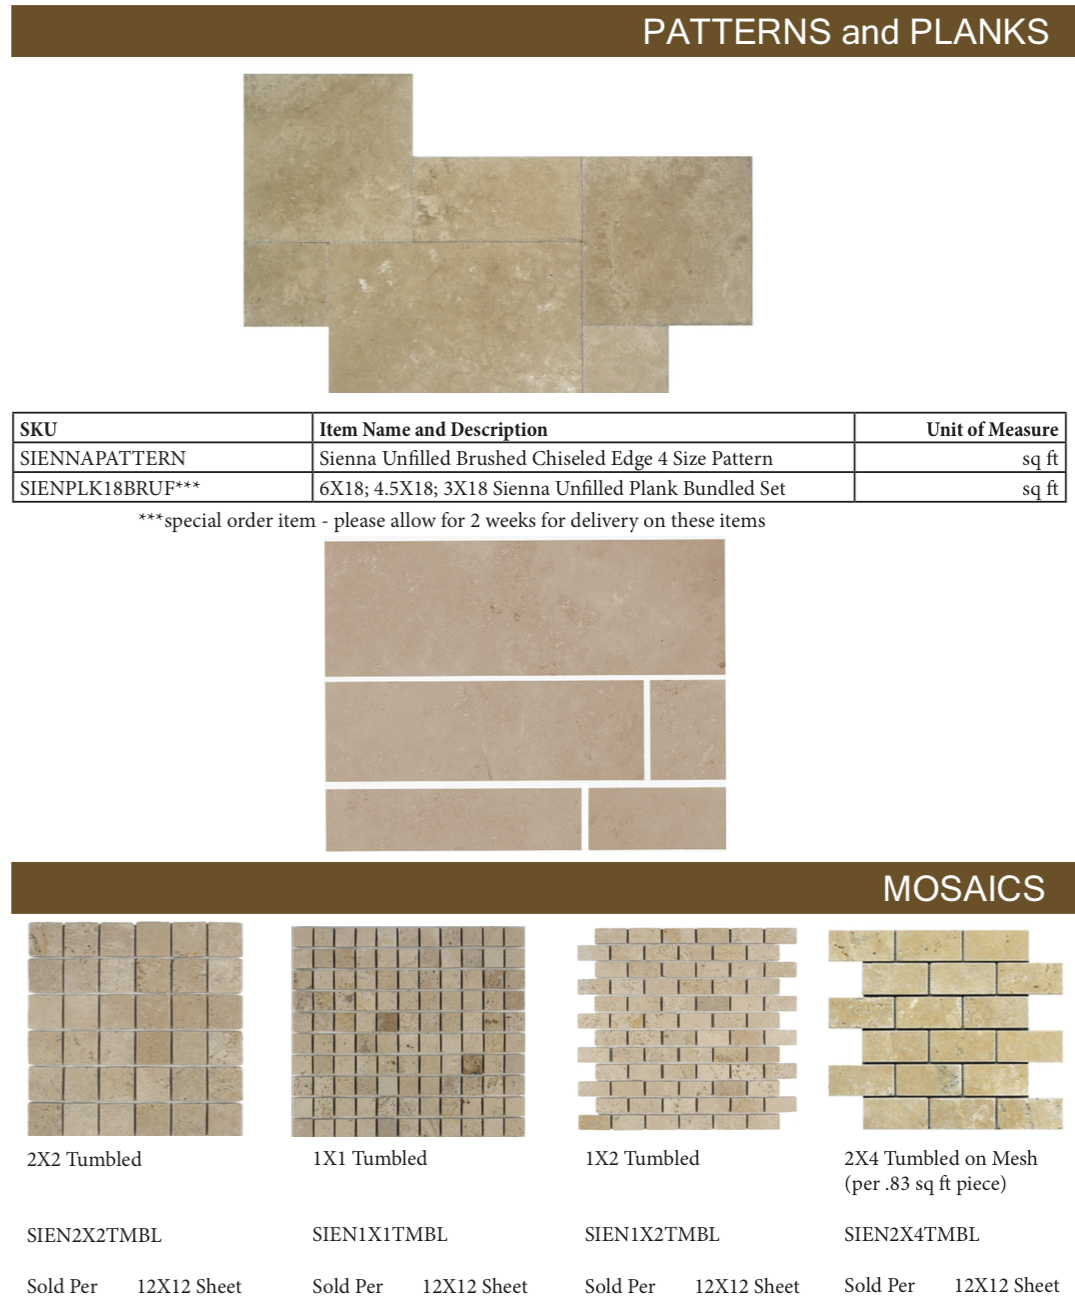 Sienna-Travertine-Patterns-Planks-and-Mosaics